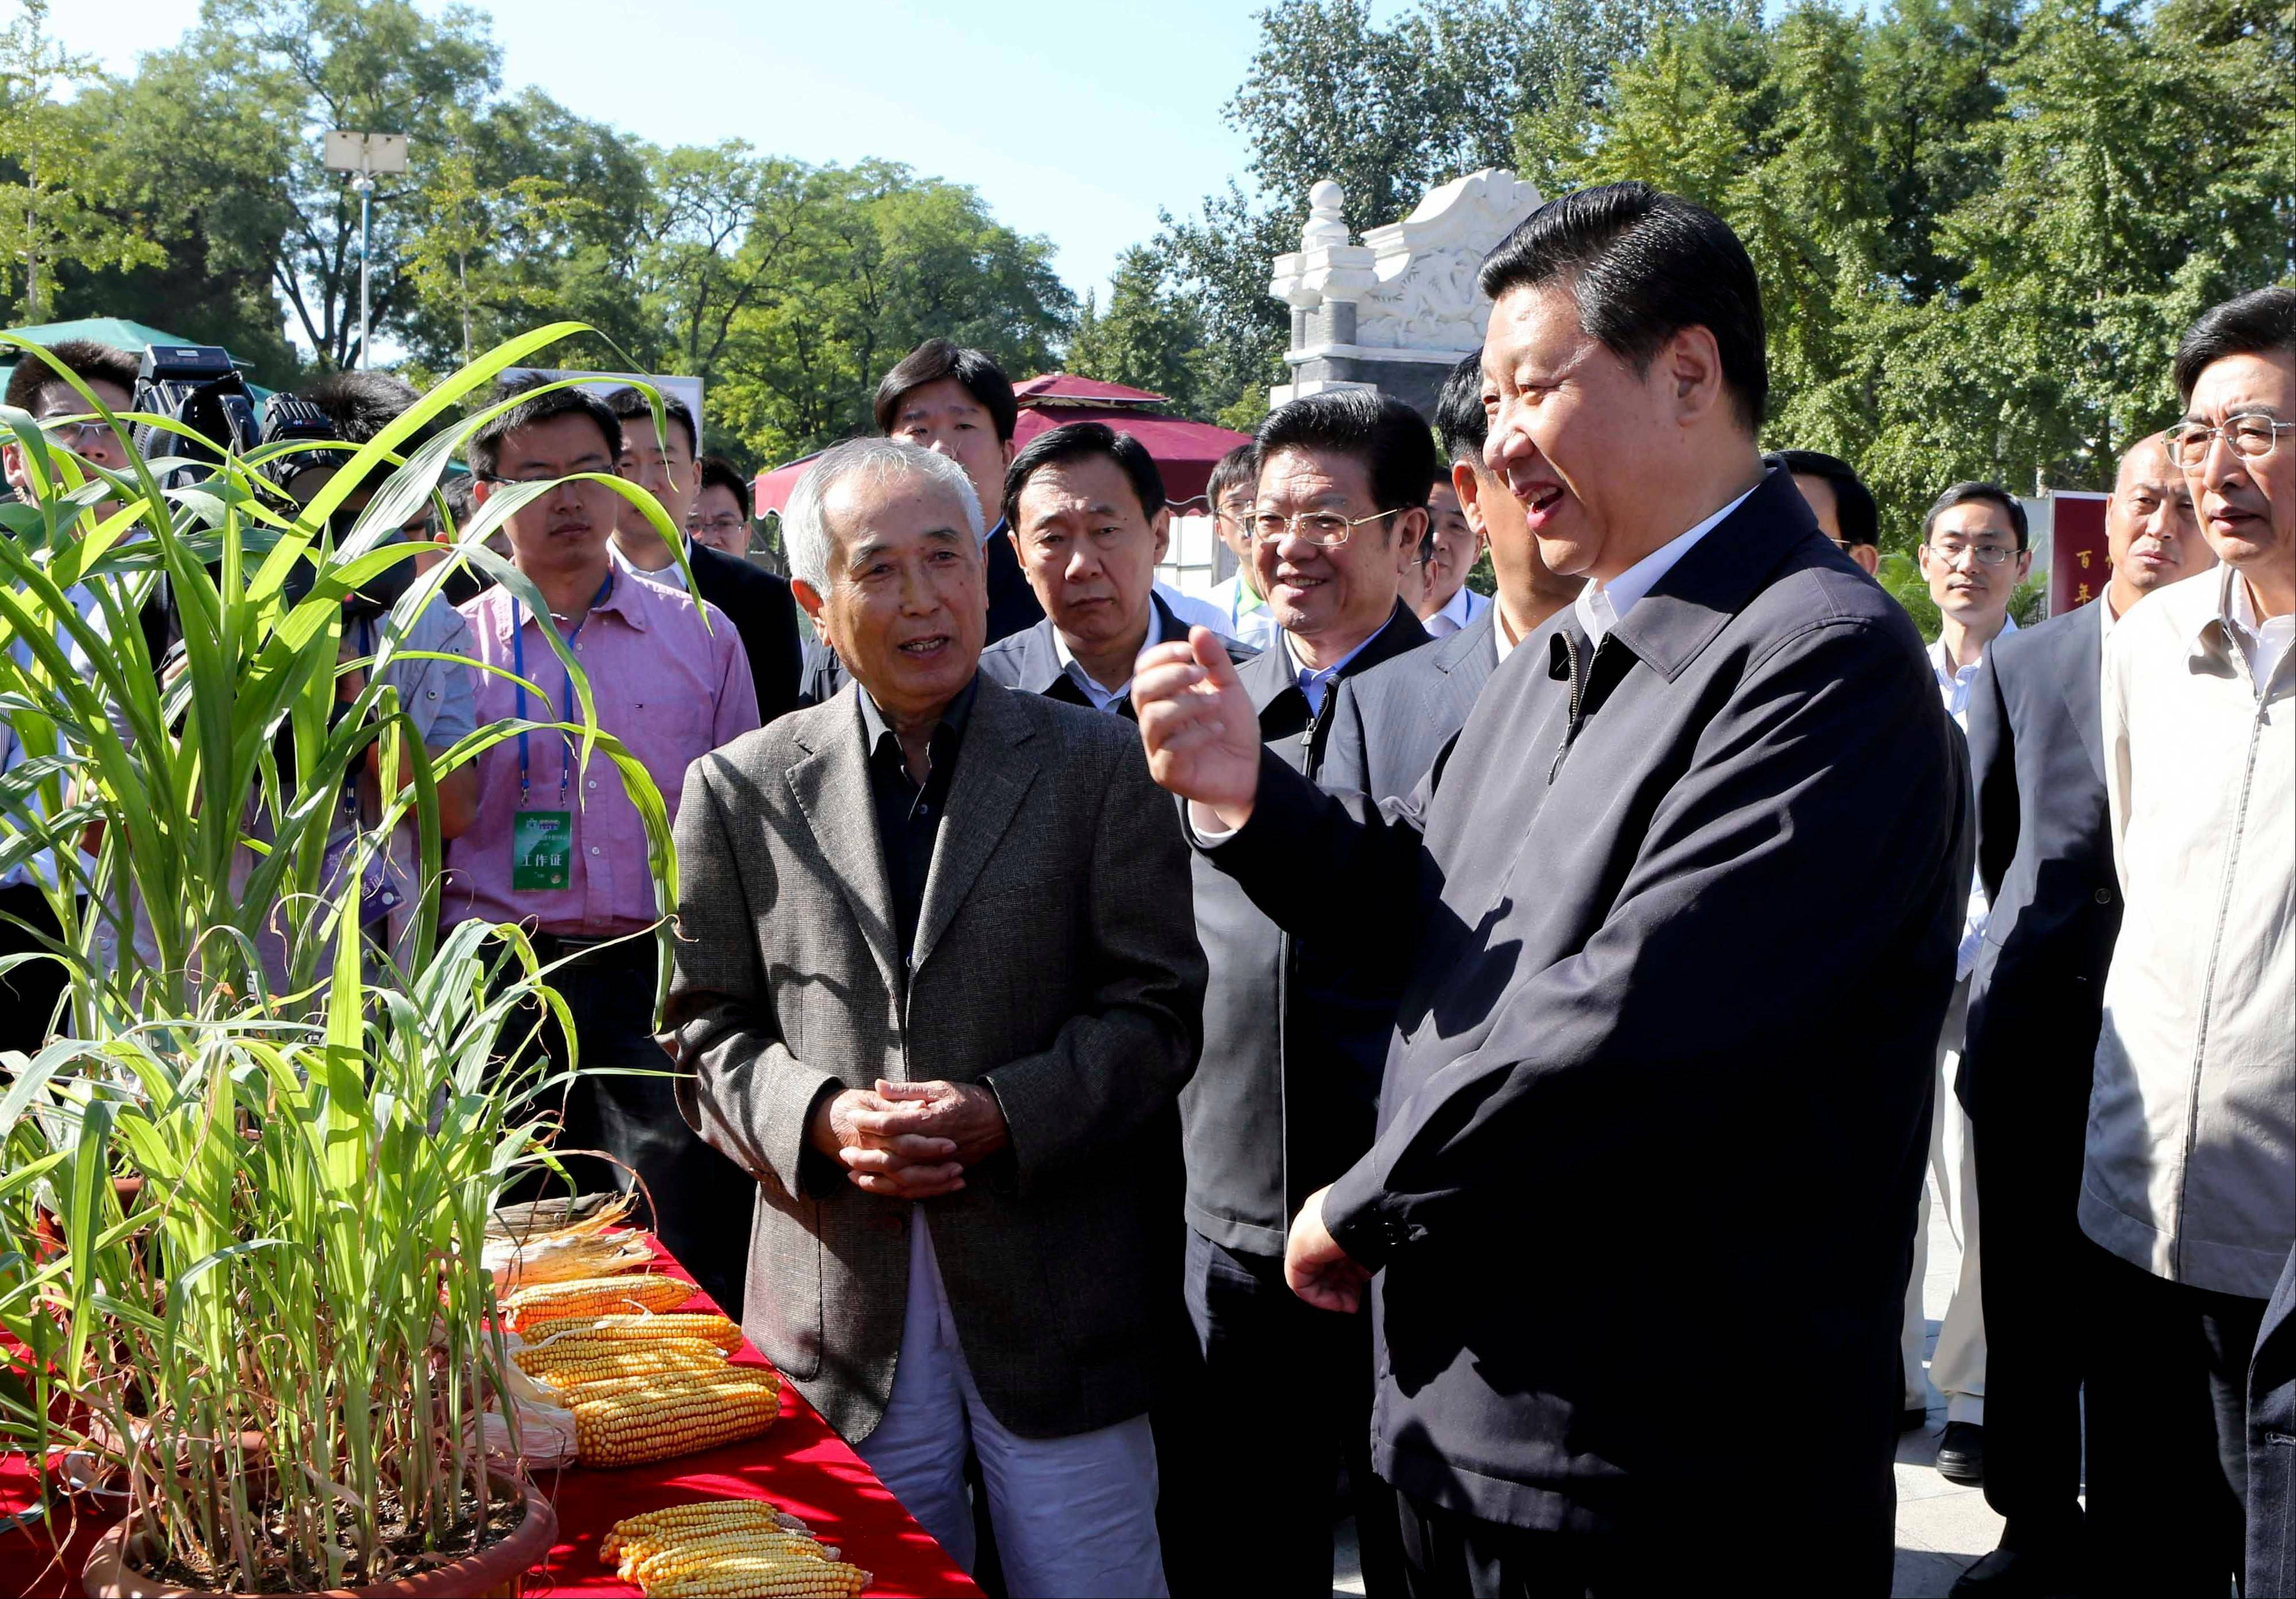 Associatewd P{ress/Courtesy of Xinhua News AgencyChinese Vice President Xi Jinping, front right, attends an activity Saturday to mark this year's National Science Popularization Day at China Agricultural University in Beijing.